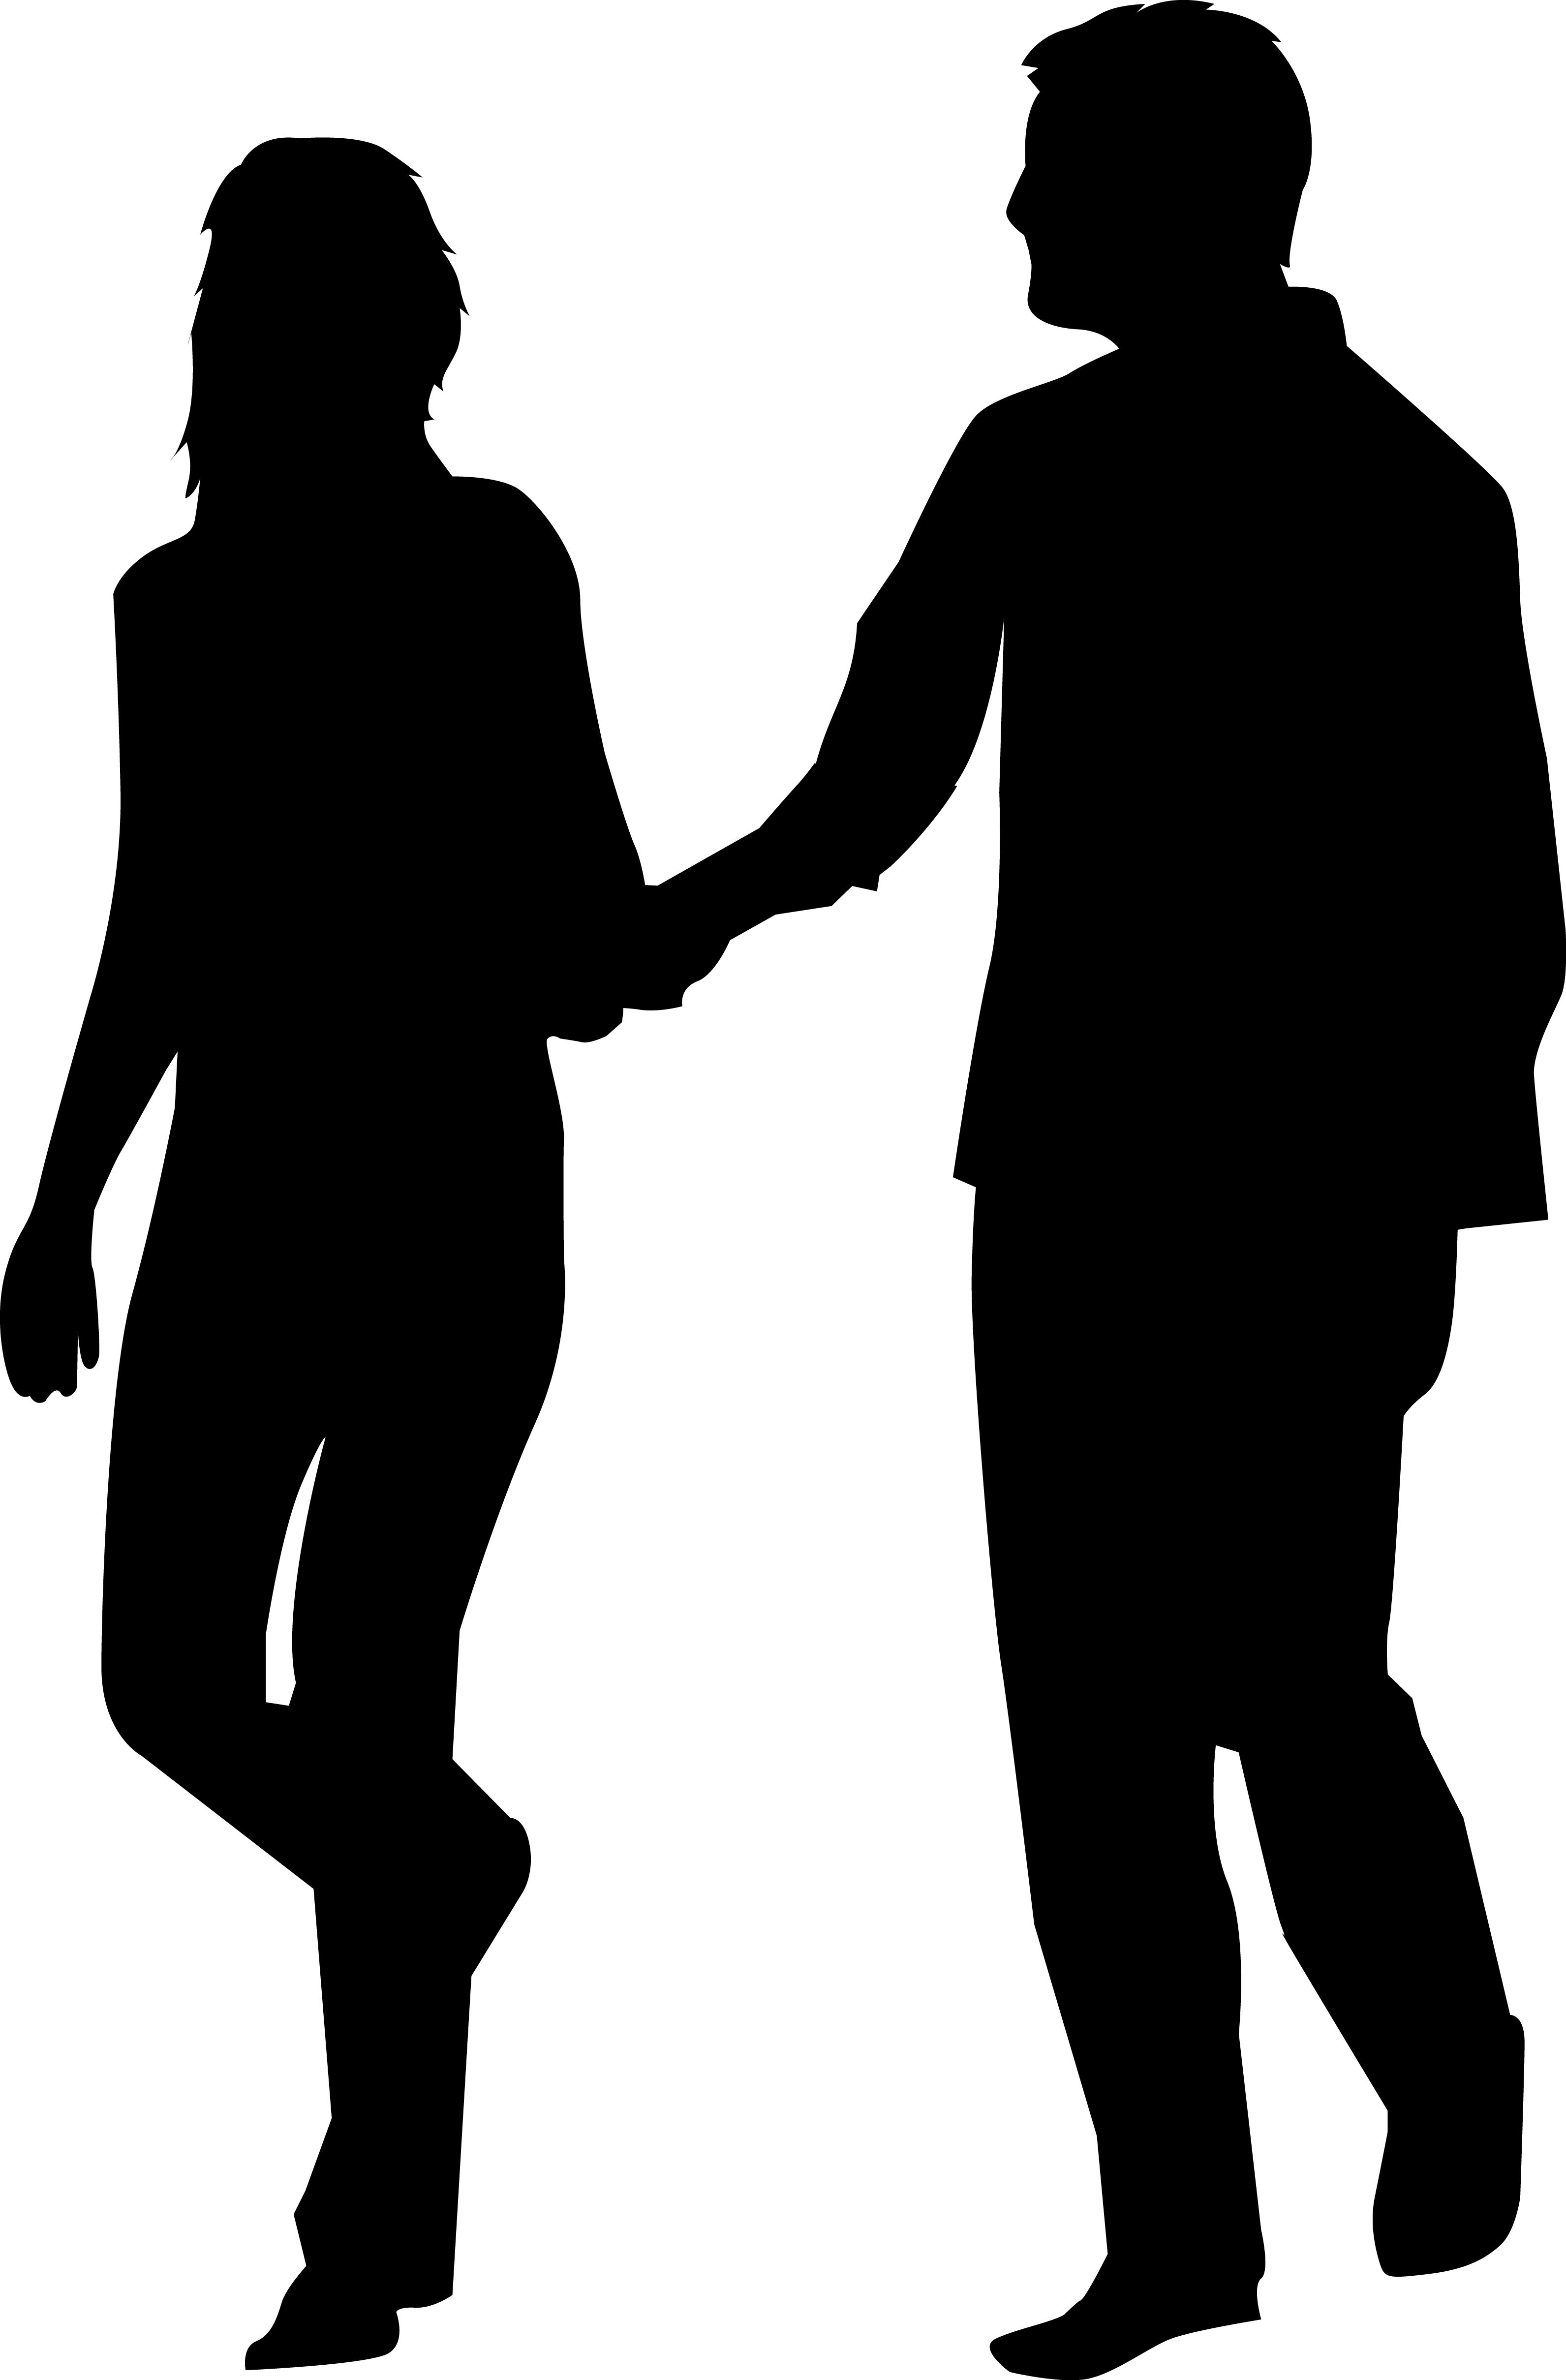 Person Silhouette Man And Woman Silhouette Silhouette People